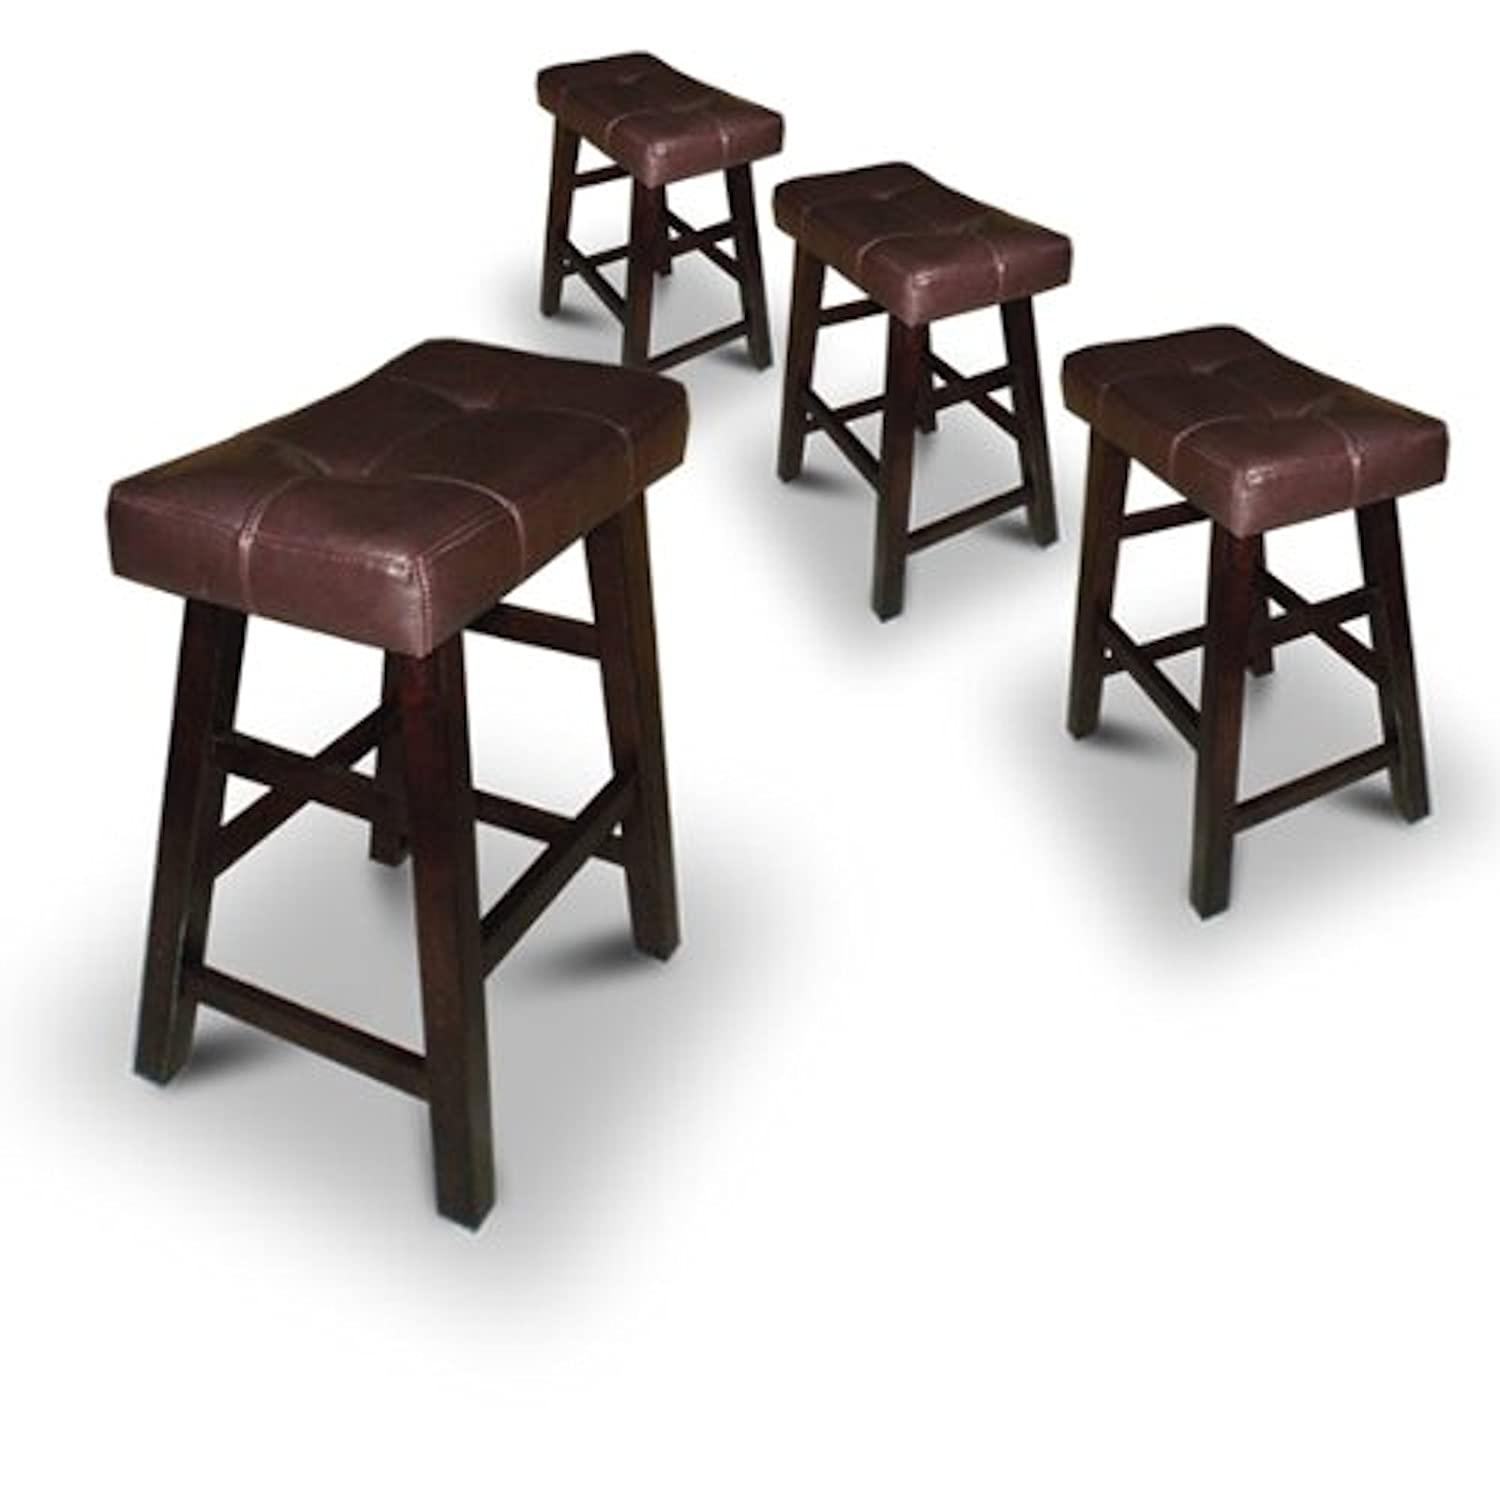 Amazon.com 4 29  Dark Espresso Wood Bar Stools with Bonded Faux Leather Seat Kitchen u0026 Dining  sc 1 st  Amazon.com : faux leather bar stools - islam-shia.org